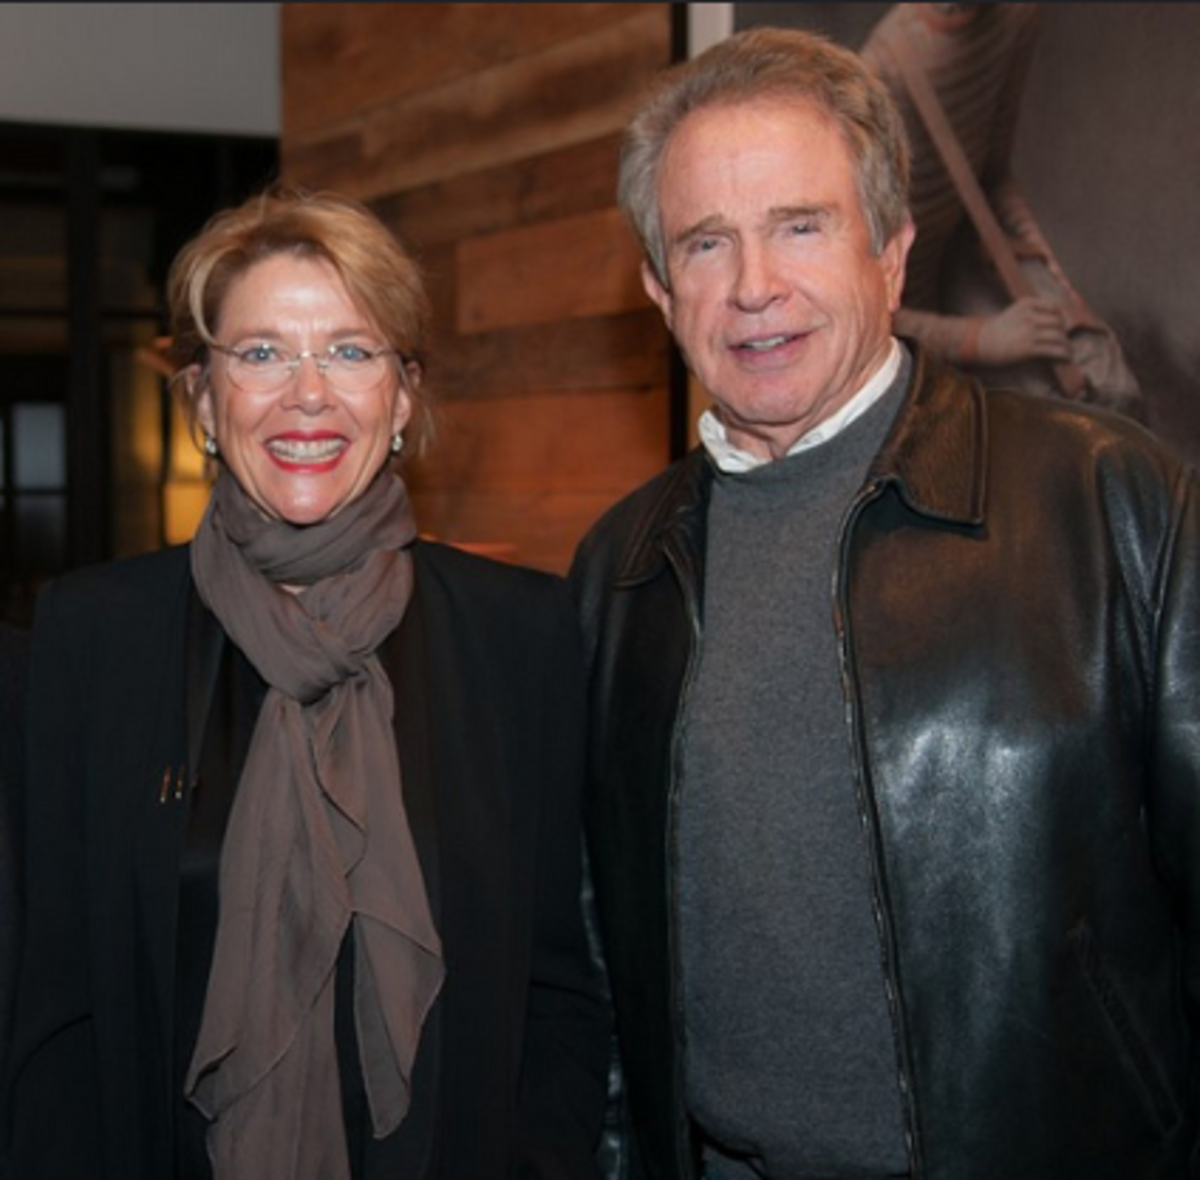 Is it fair to pressure Hollywood couple, Annette Bening and Warren Beatty, to publicly support their transgender son?